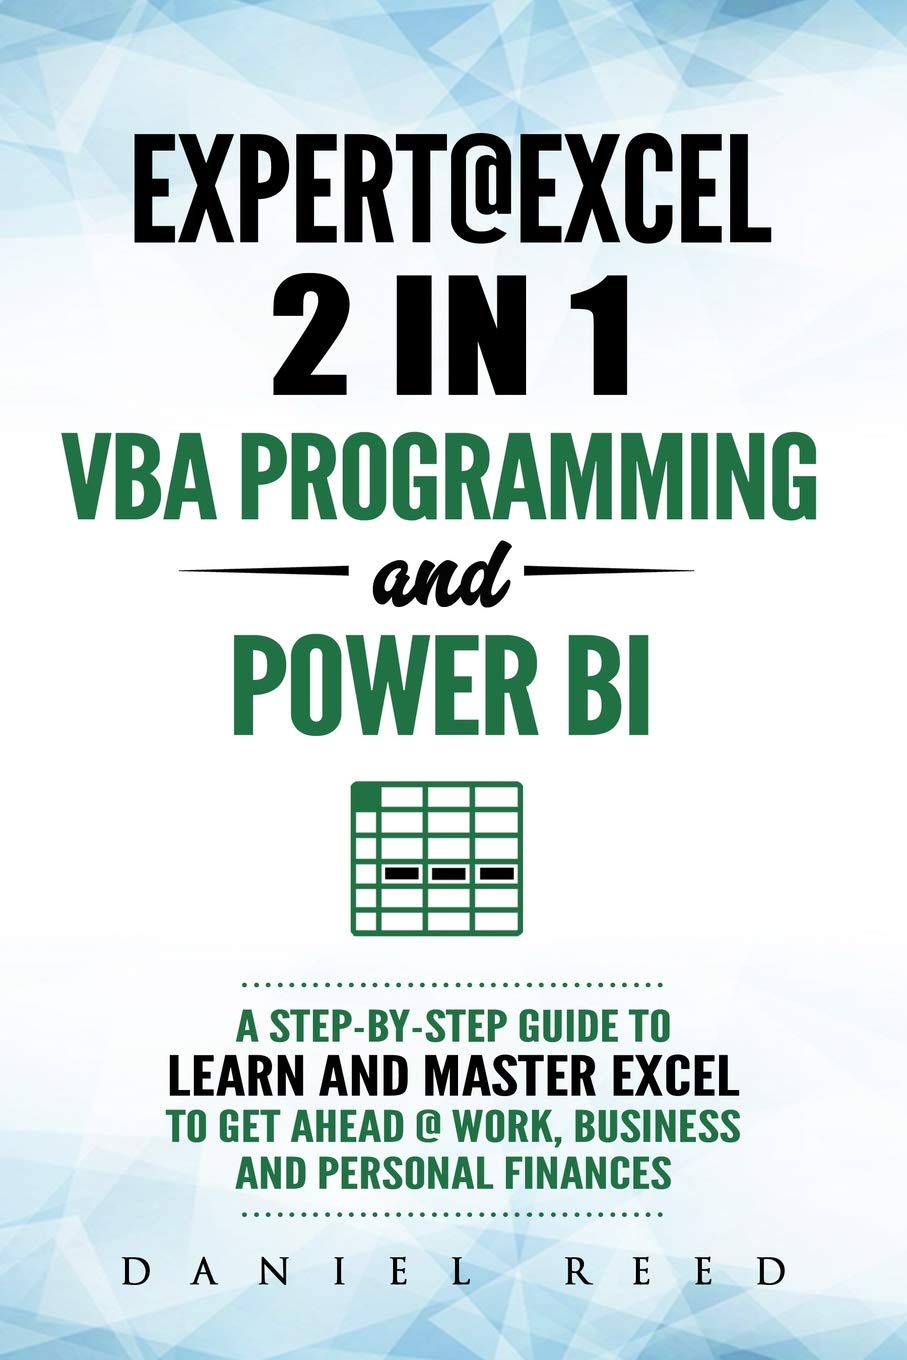 Expert @ Excel: VBA Programming and Power BI: Step-By-Step Guide To Learn And Master Pivot Tables and VBA Programming To Get Ahead @ Work, Business And Personal Finances